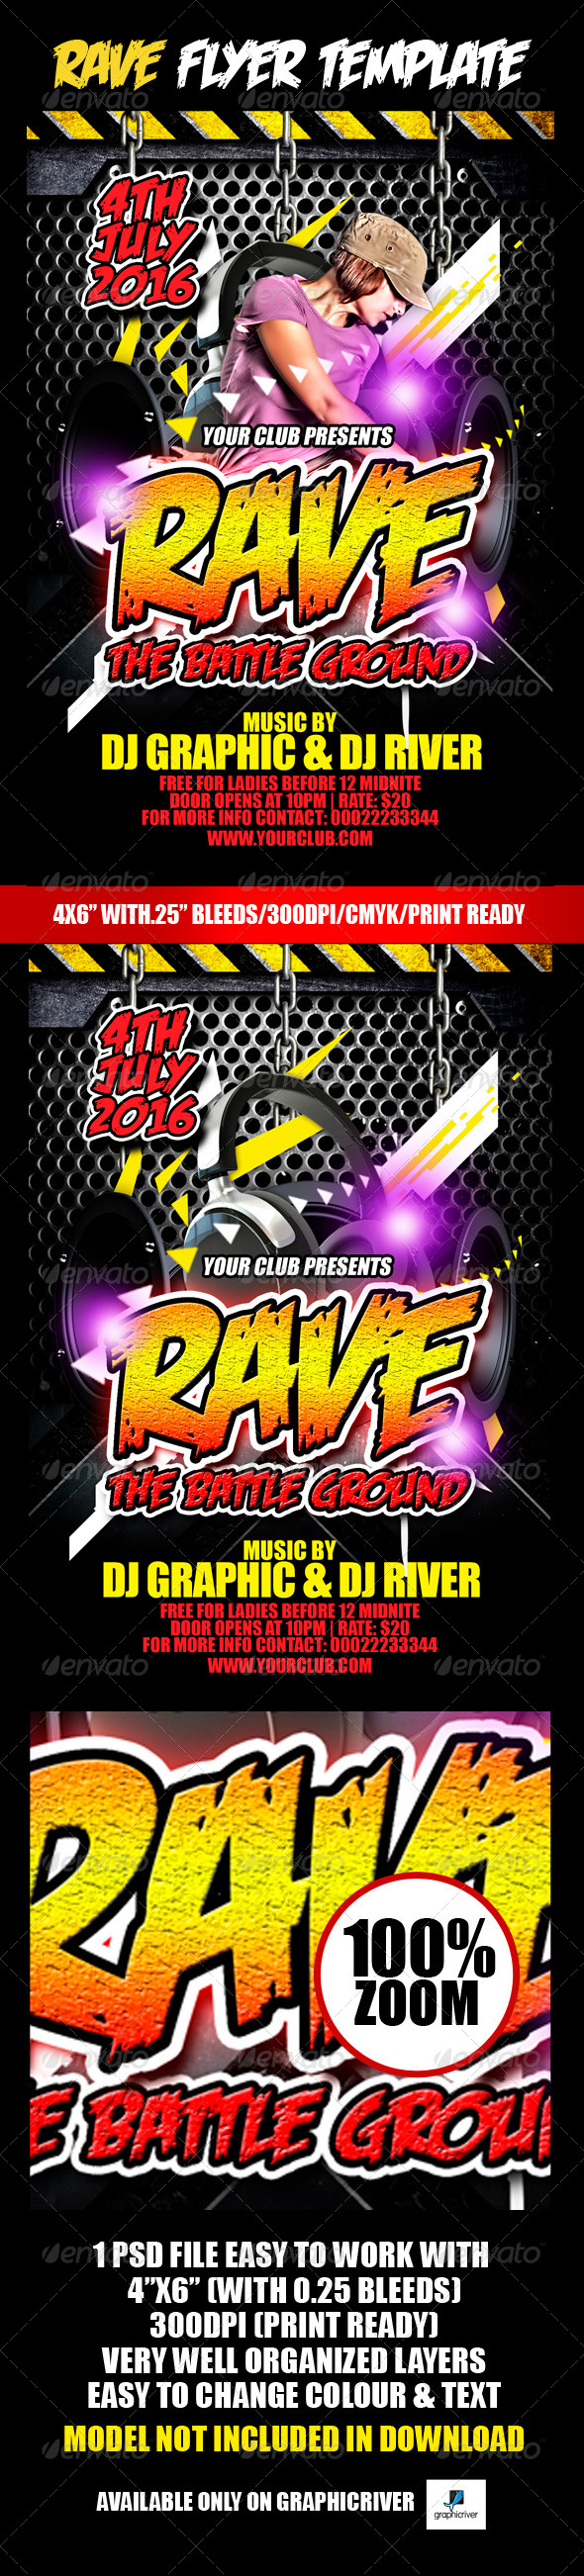 Rave Flyer Template  - Clubs & Parties Events